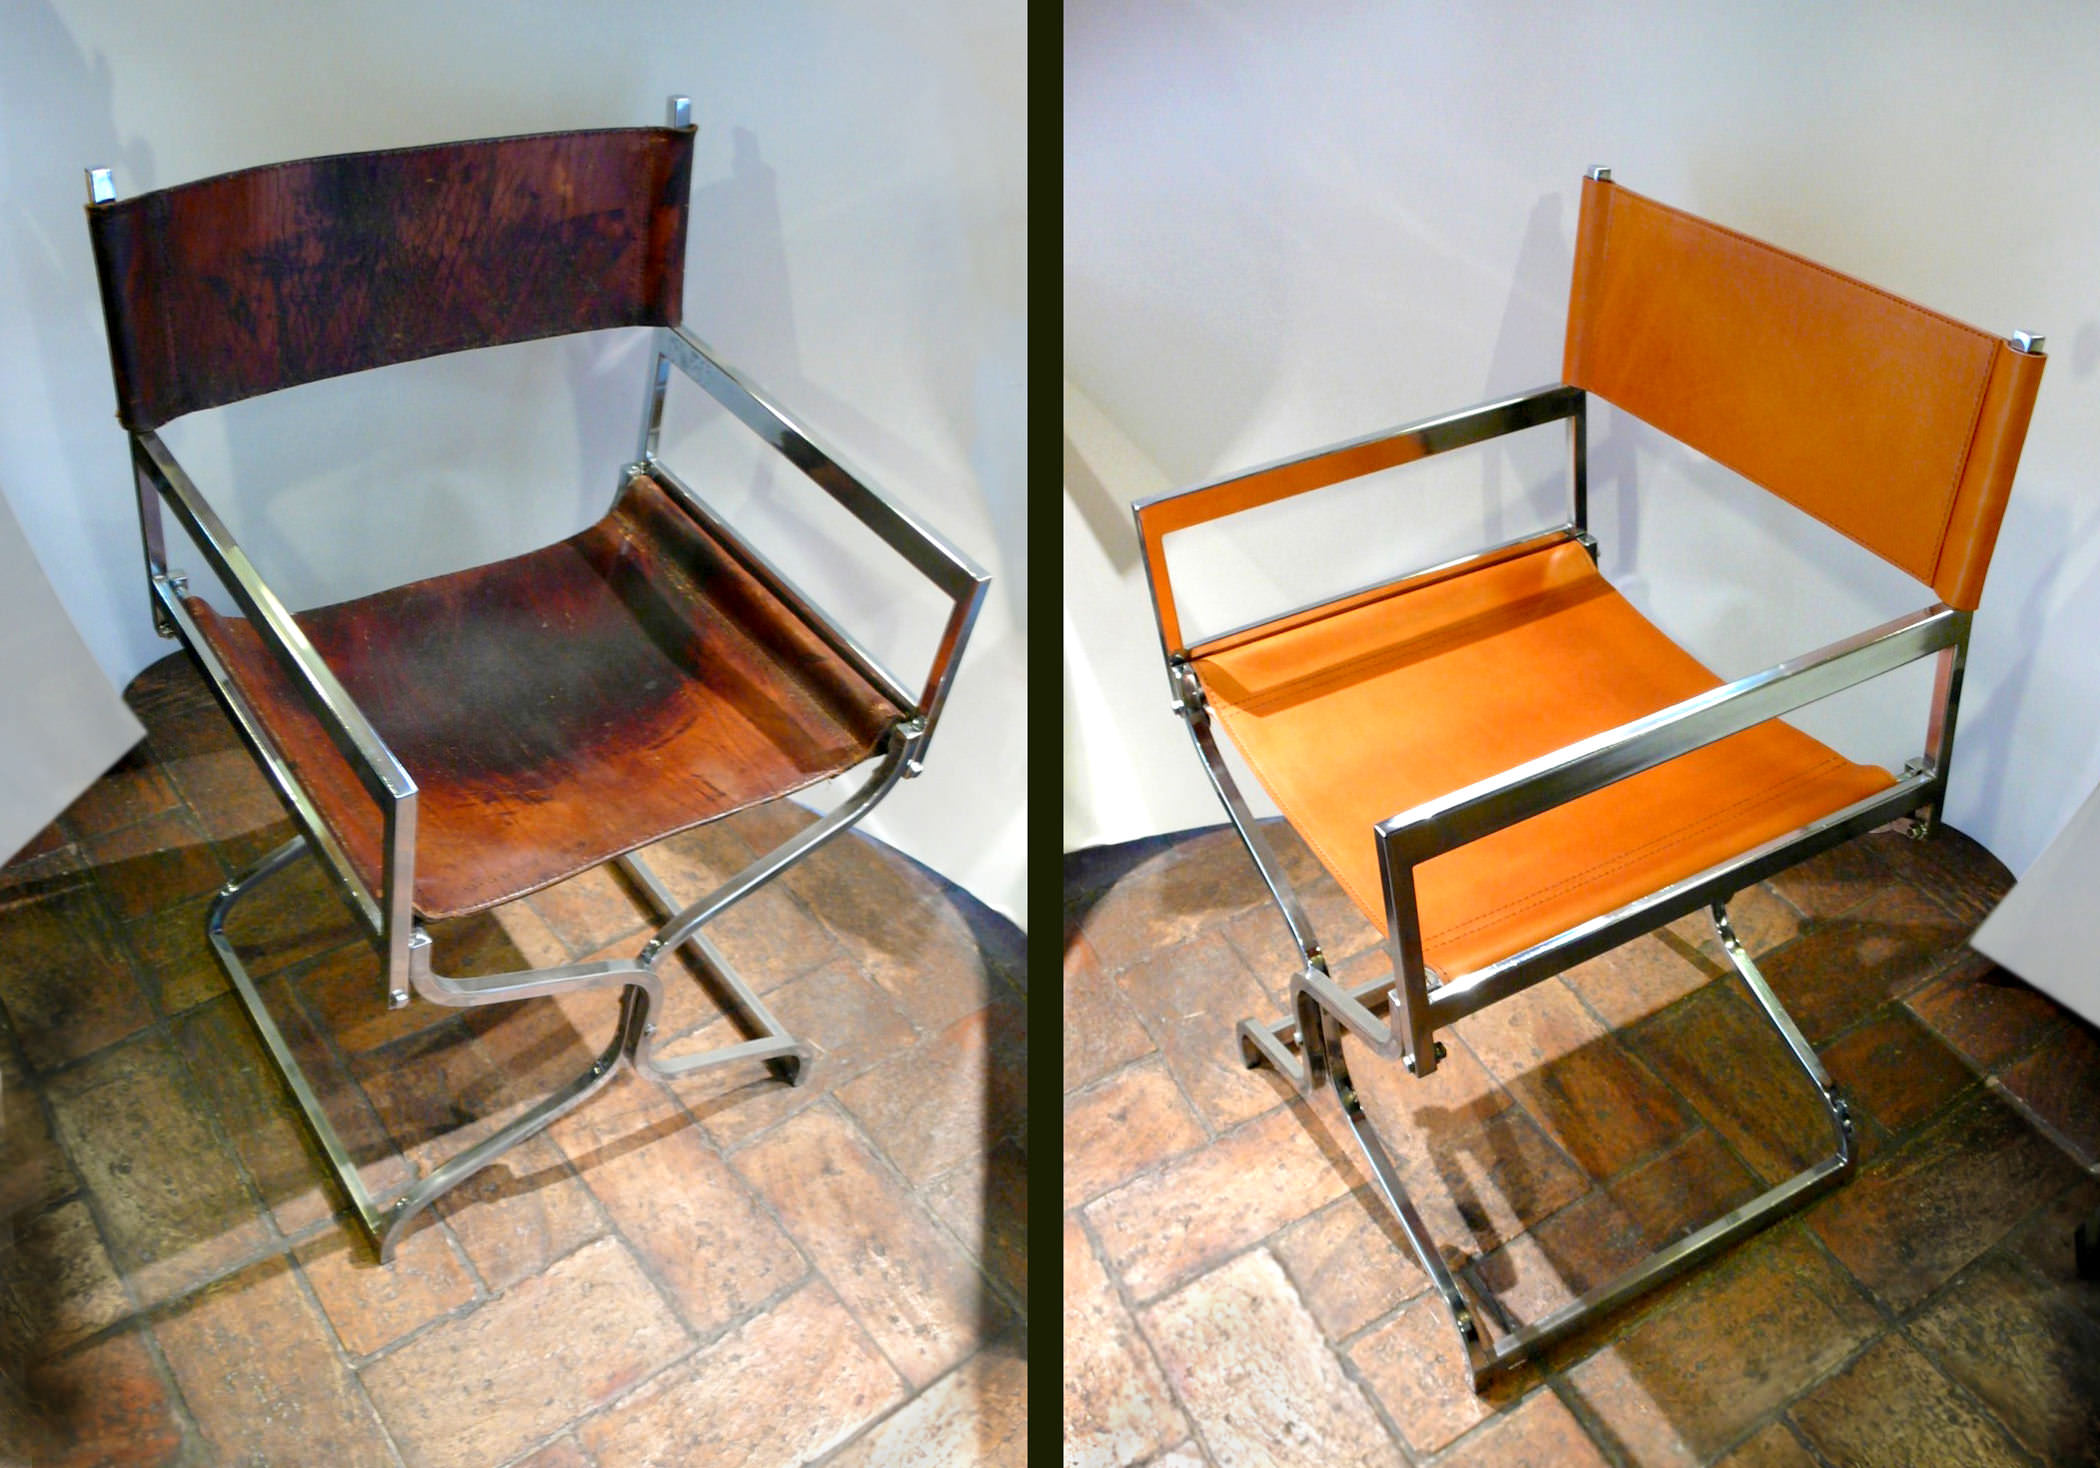 Finest Restoring a director's chair: before and after - Dario Alfonsi UG04